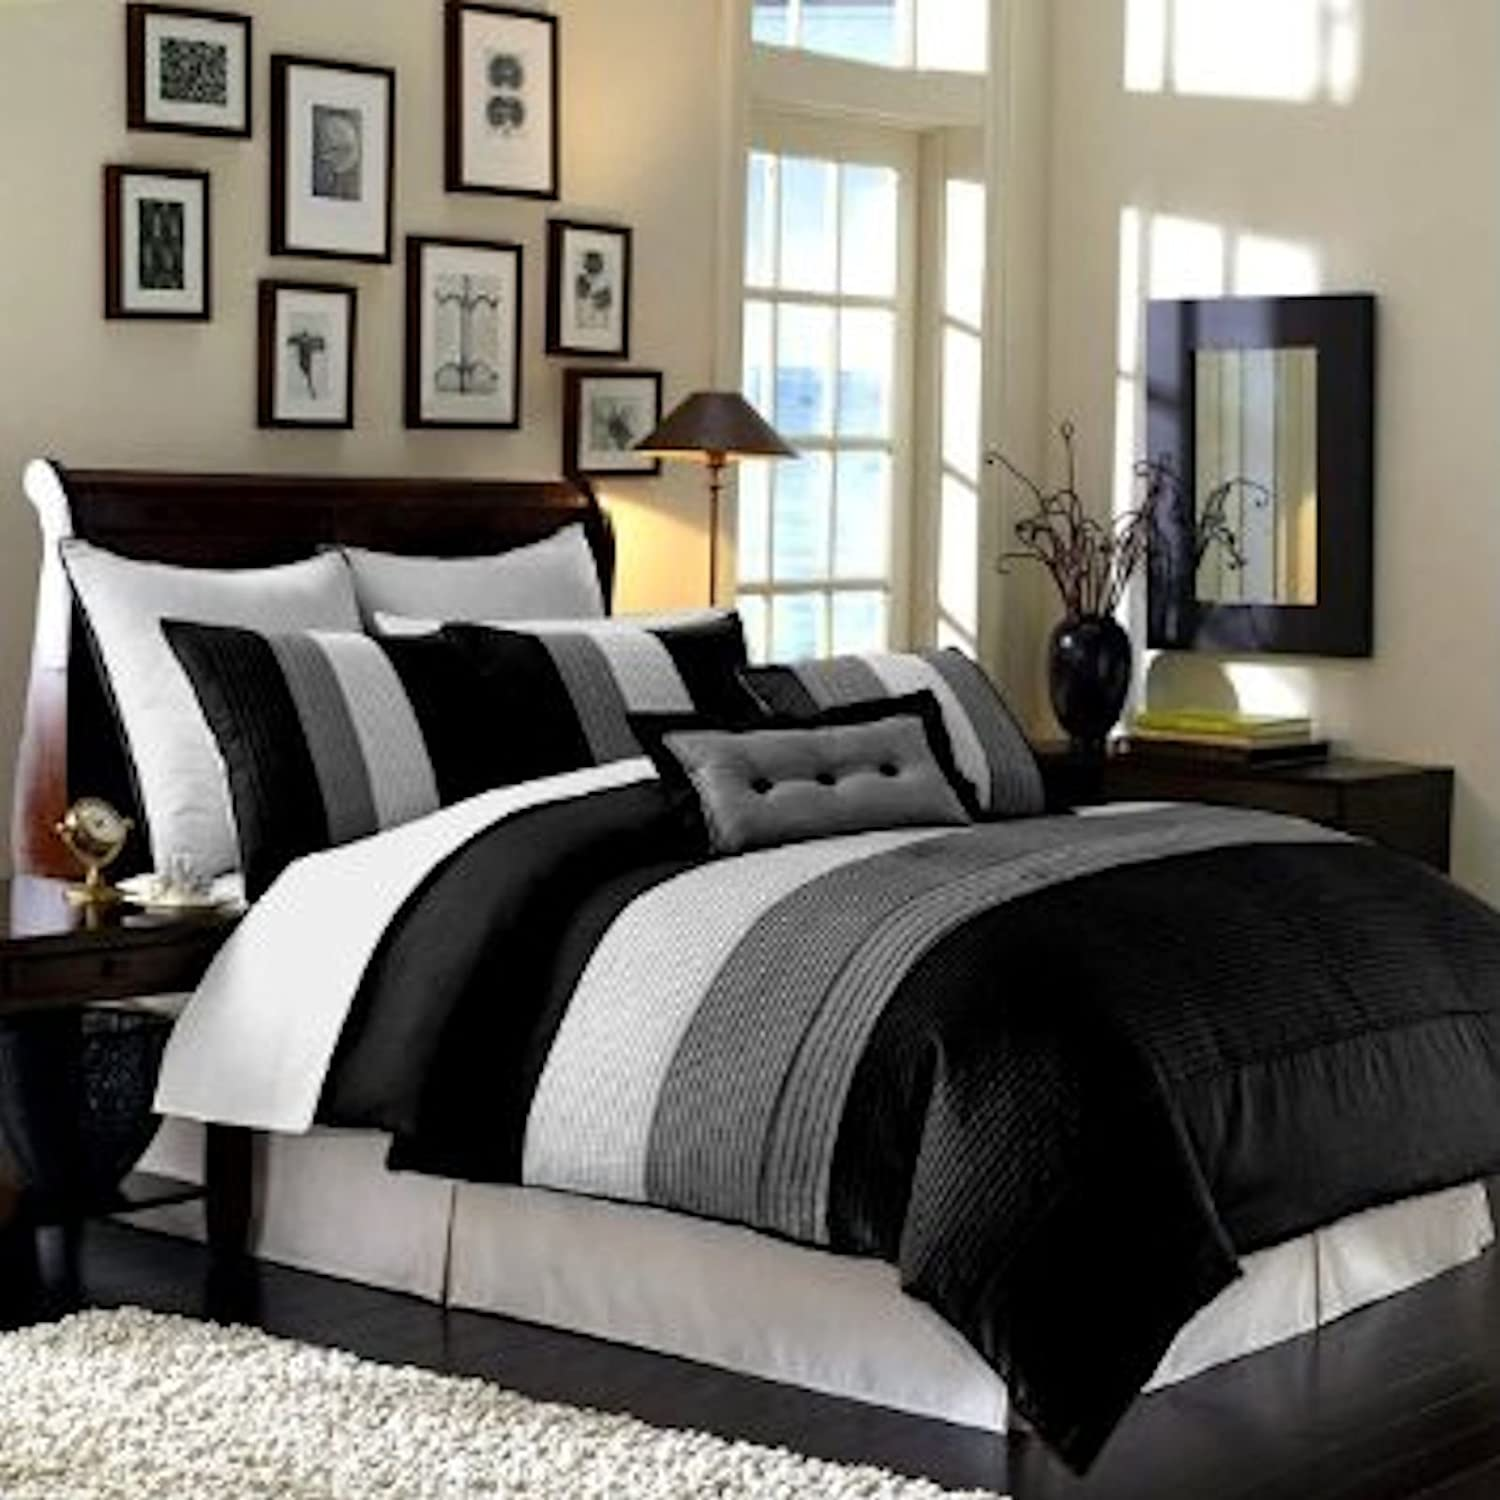 Amazoncom Legacy Decor 8pcs Modern Black White Grey Luxury